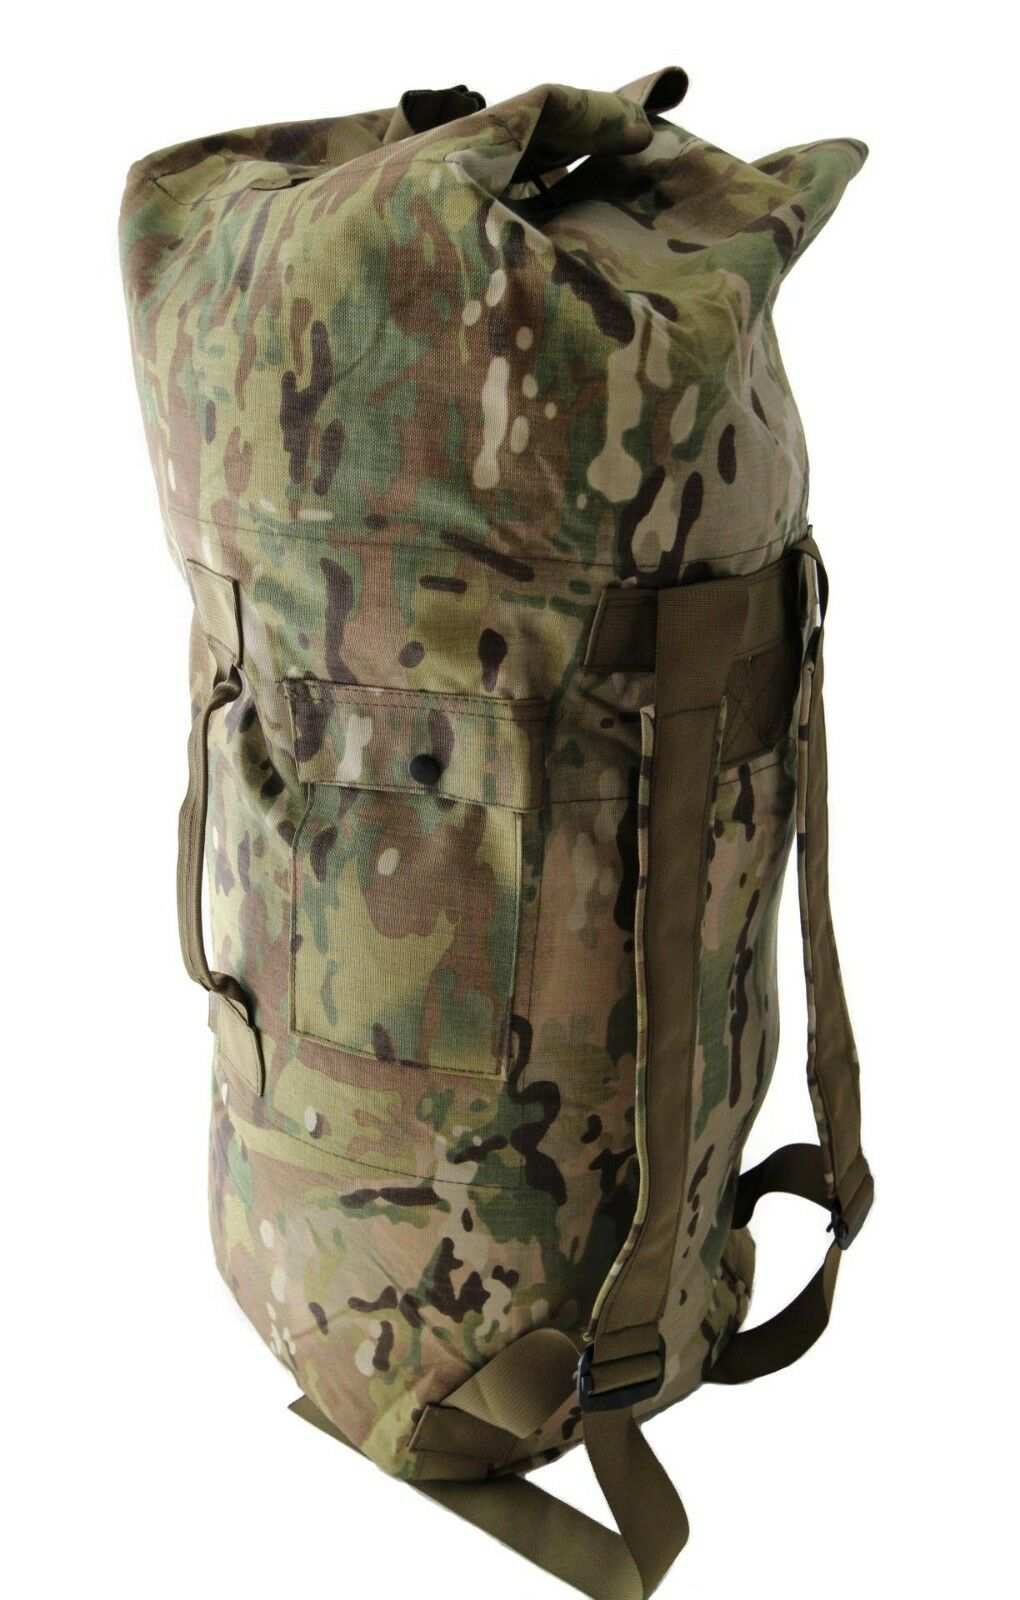 Hank's Surplus Military Style CORDURA Nylon MultiCam A-TACS AU Duffle Duffel Bag